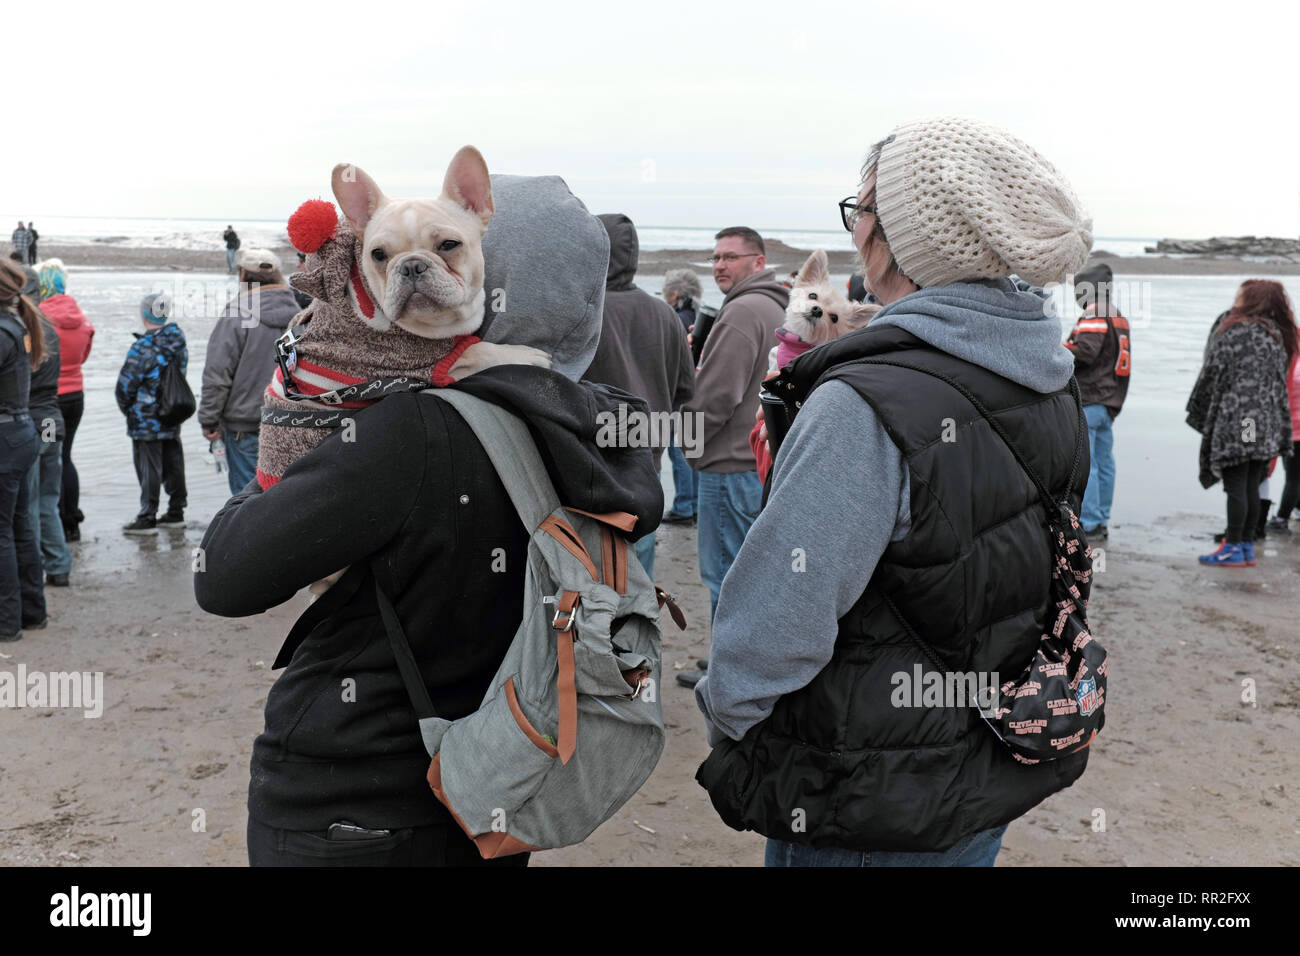 Cleveland, Ohio, USA. 23rd Feb, 2019.  Spectators and their pooches brave the winter cold to watch participants plunge into the ice-filled waters of Lake Erie.  The 2019 Cleveland Polar Plunge benefits the Special Olympics with this years event raising over $94,000 by more than 400 people. Credit: Mark Kanning/Alamy Live News. - Stock Image